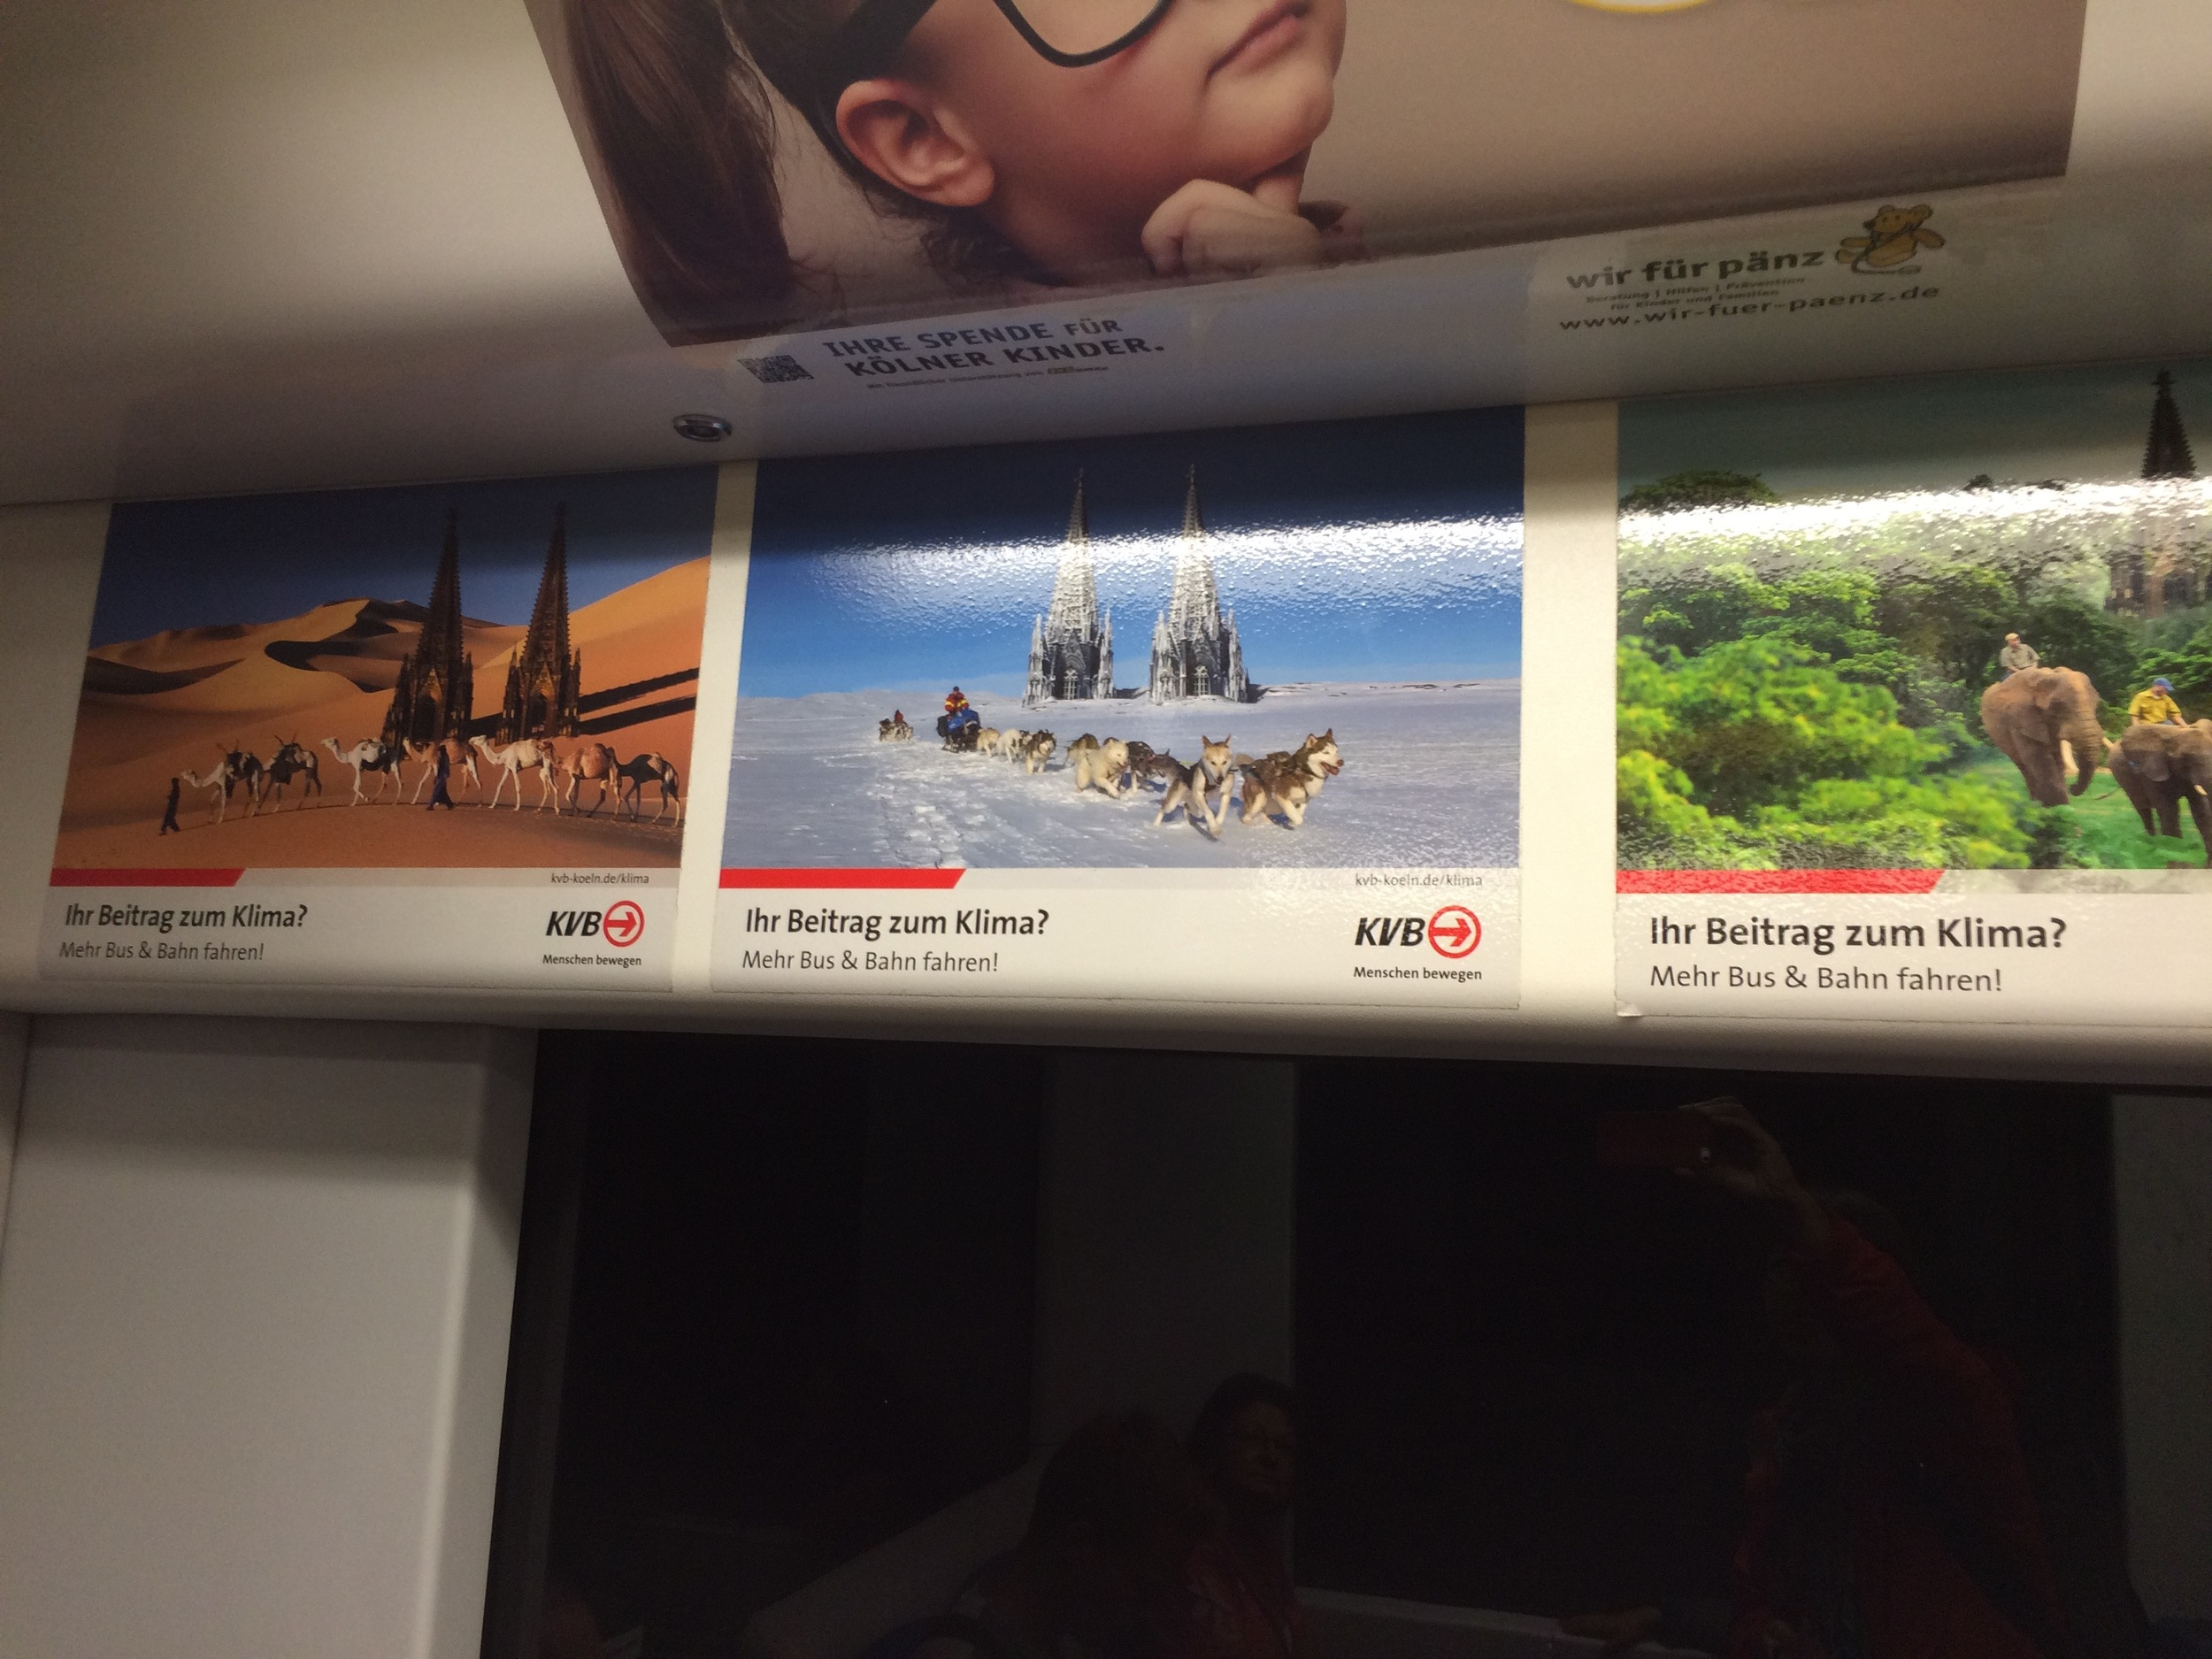 """Signs in the Cologne metro, showing the Cologne """"Dom"""" cathedral overwhelmed by climate chaos. The signs say:""""What are you doing for the climate? Riding the bus & train more!"""""""